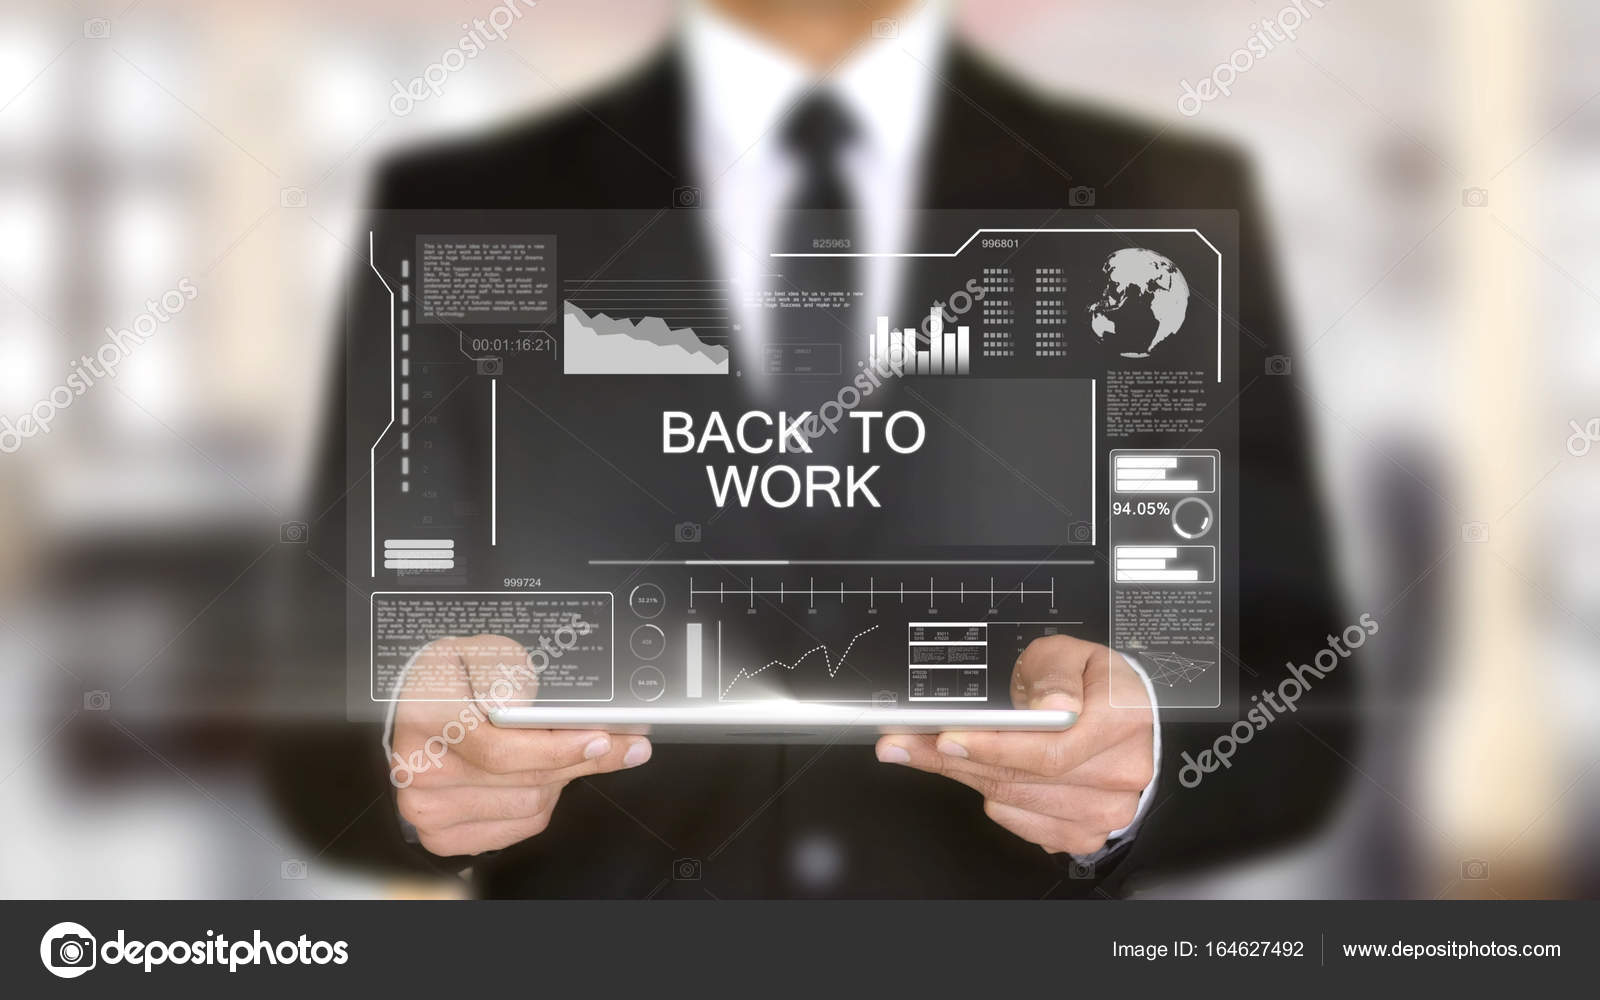 Back To Work : Getting back to work five tips to get yourself working at full